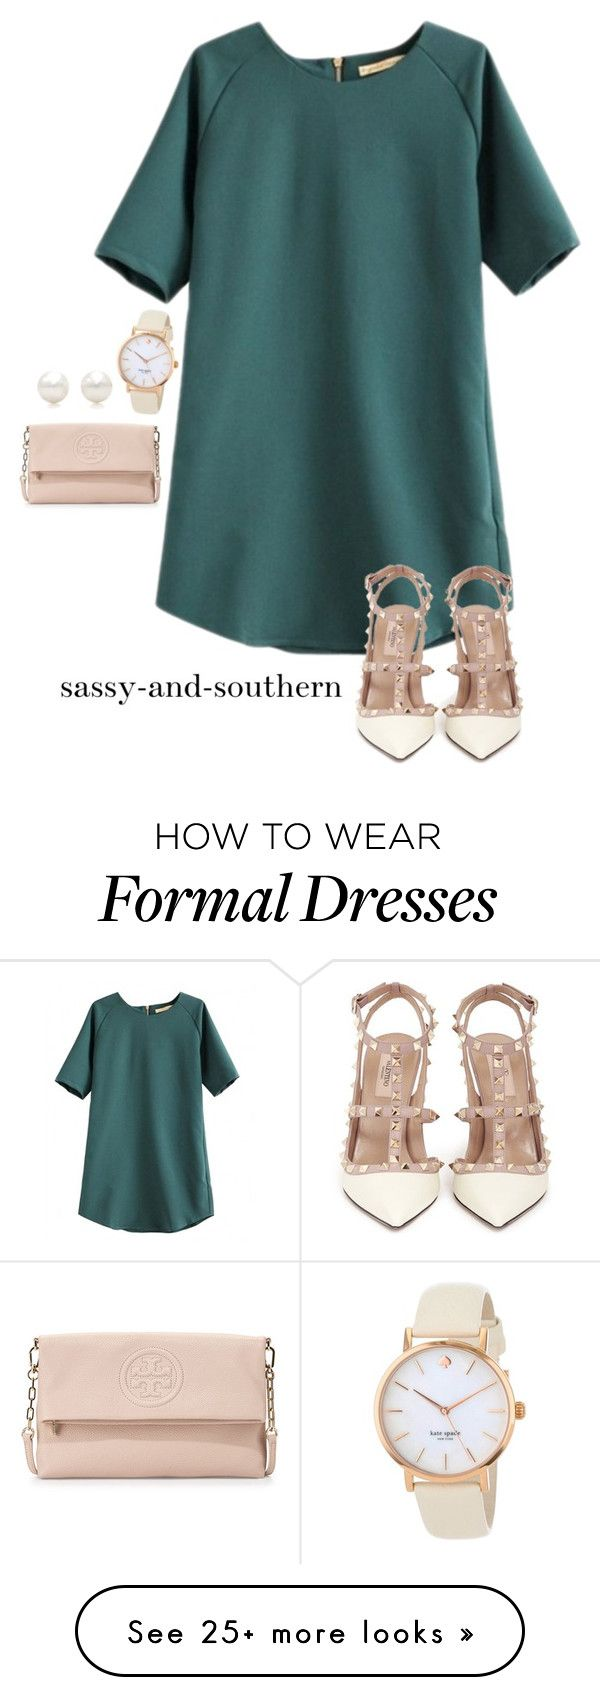 """formal outfit"" by sassy-and-southern on Polyvore featuring Valentino, Kate Spade, Tory Burch, Tiffany & Co., ToryBurch, valentino and katespade"